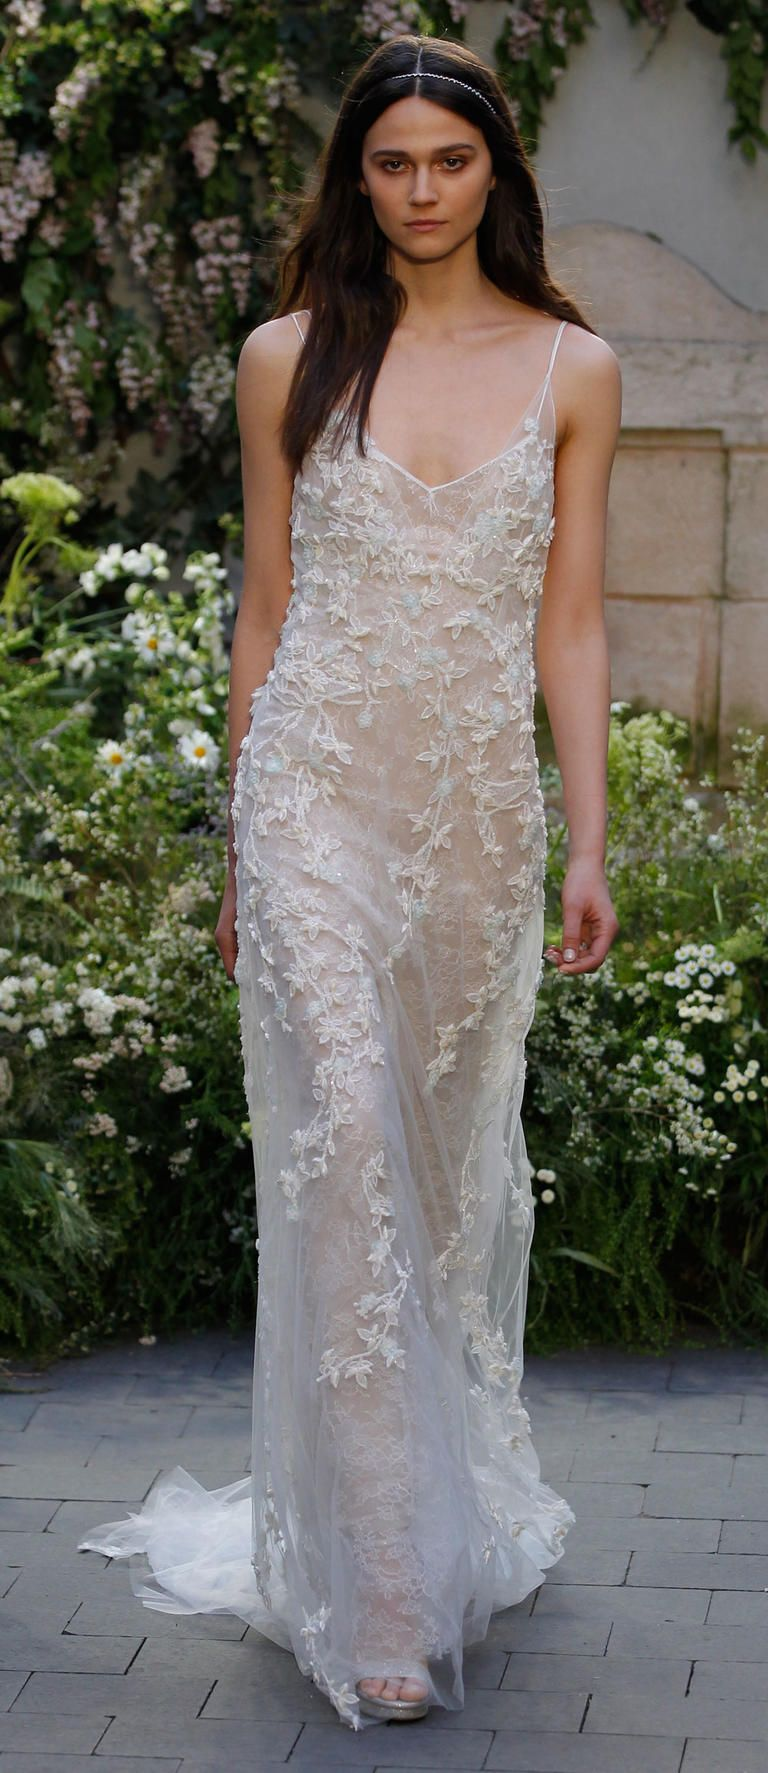 See Monique Lhuillier Wedding Dresses From Bridal Fashion Week Spring 2017 Wedding Dresses Monique Lhuillier Bridal Designer Wedding Dresses